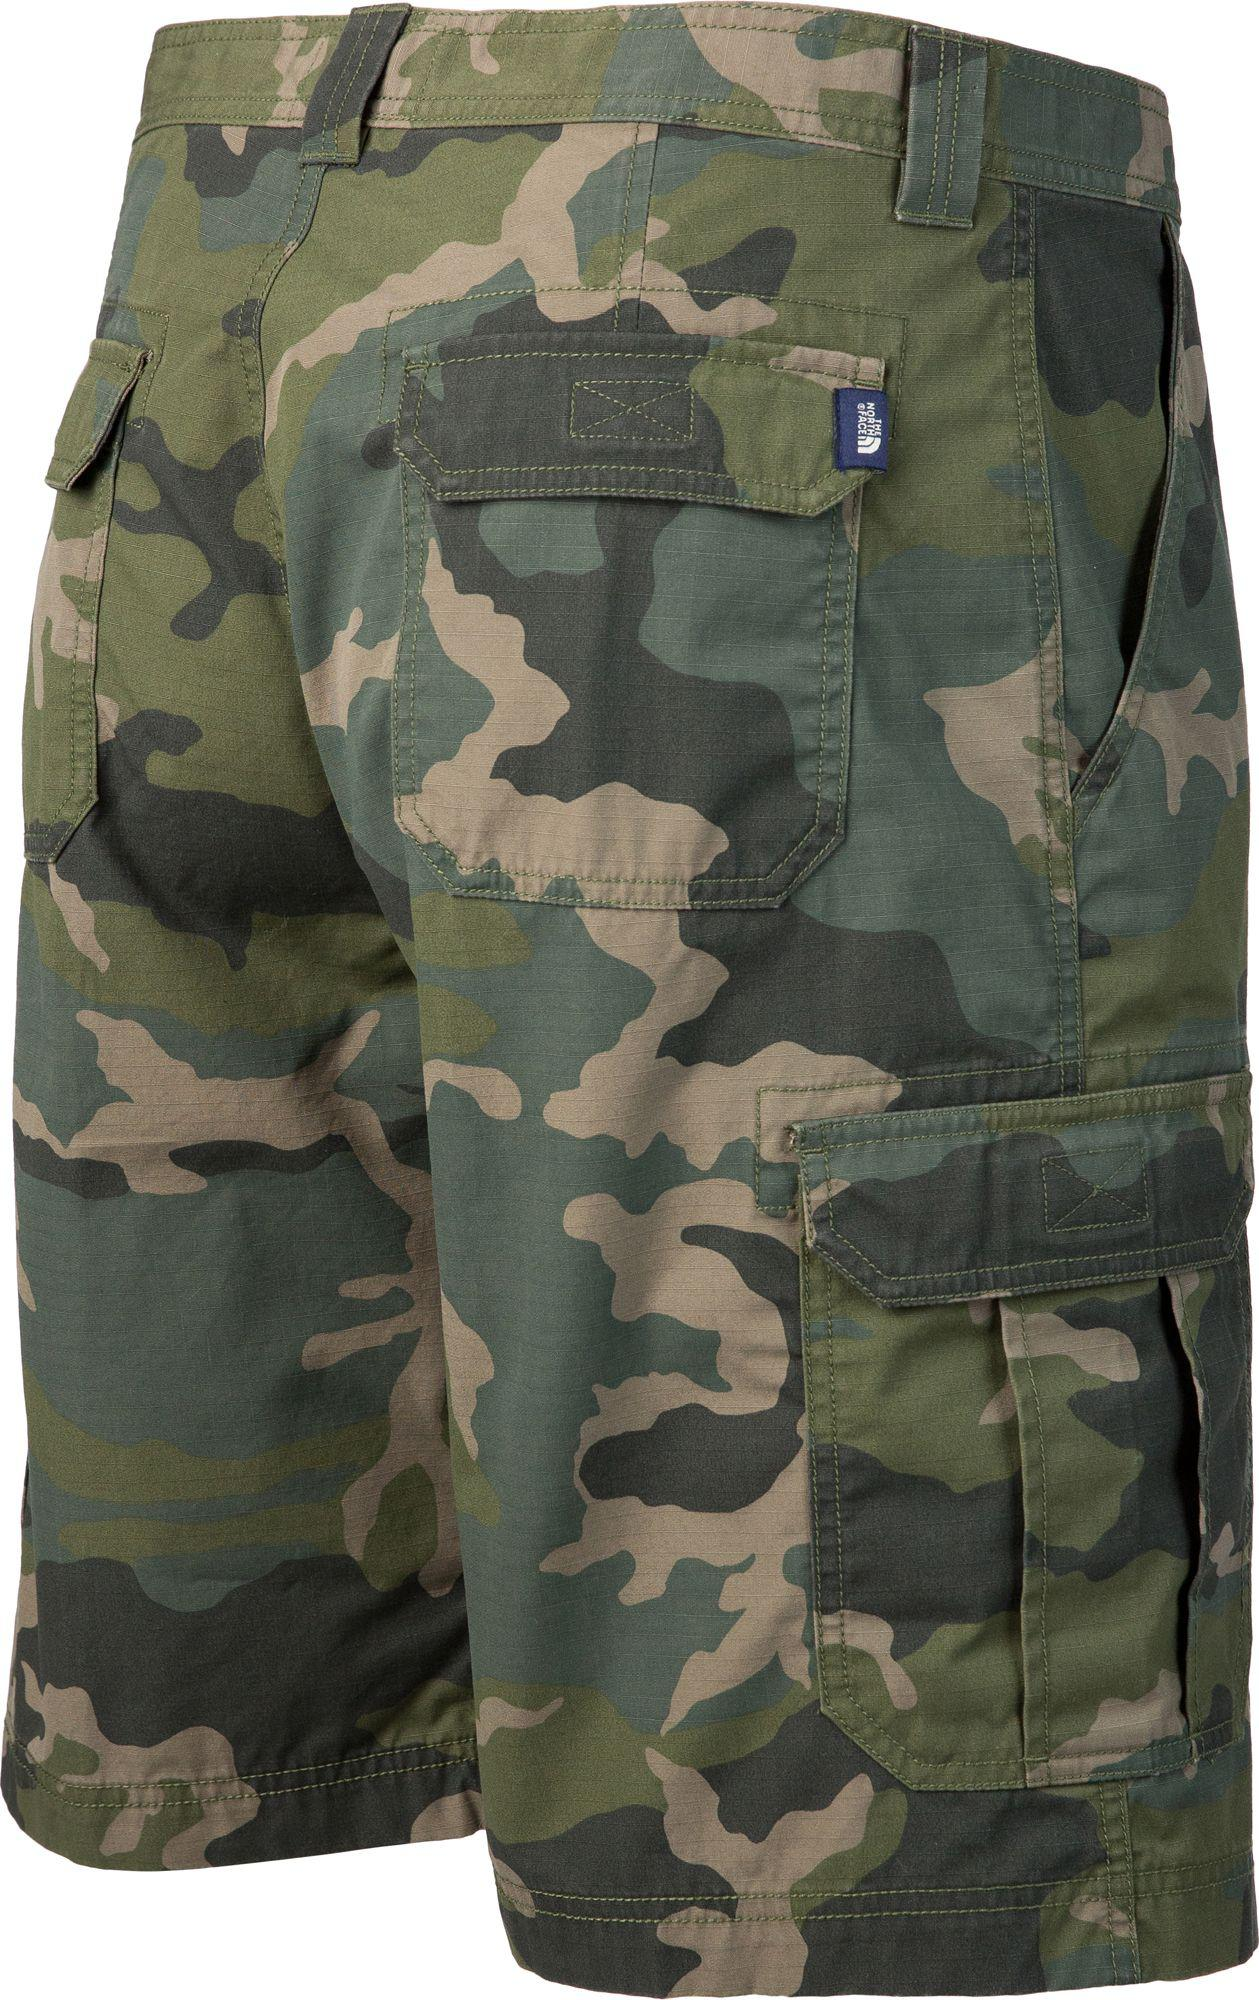 f0cd27dac8 The North Face Tribe Cargo Shorts - Past Season in Green for Men - Lyst